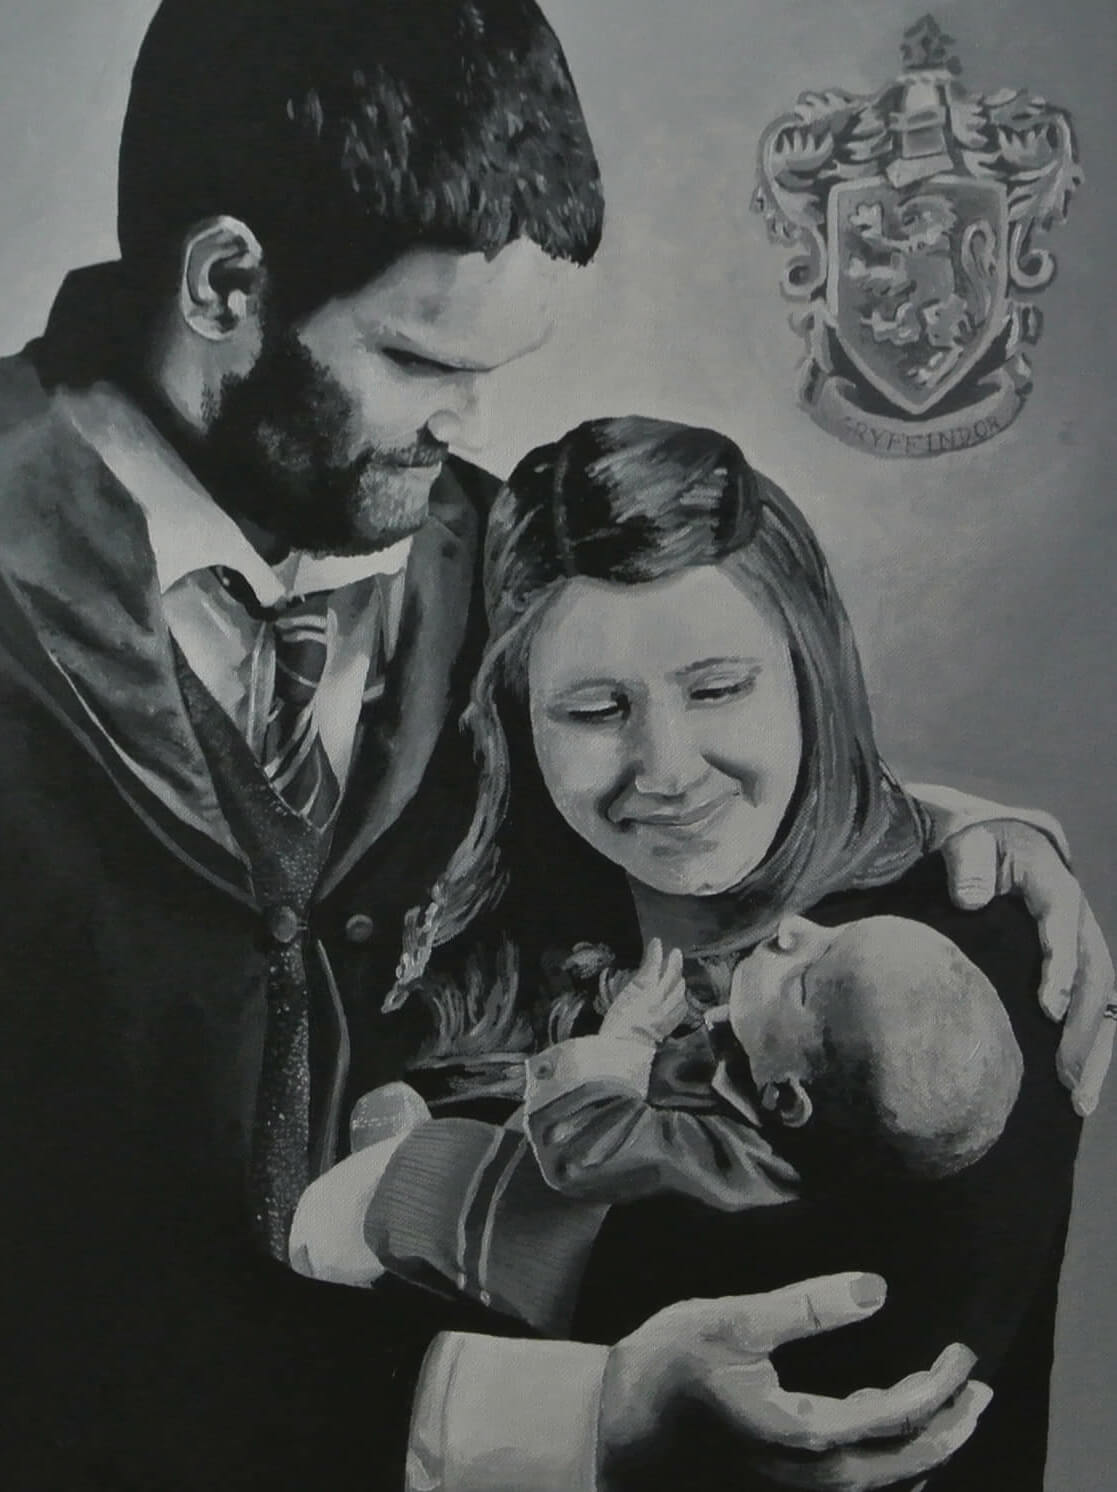 a painting of my friend Adam, his wife, and newborn child wearing Harry Potter robes and a Gryffindor crest